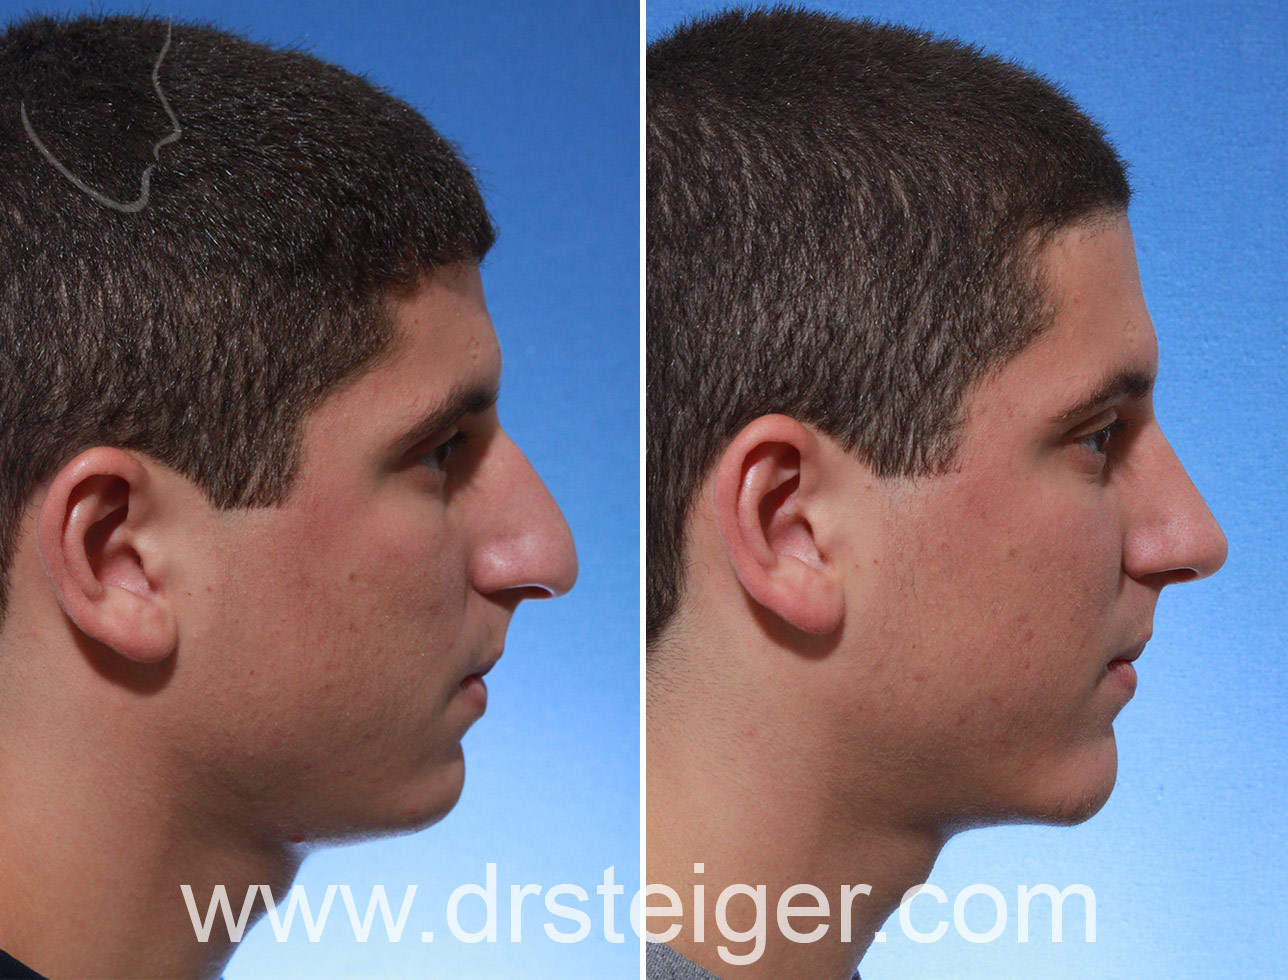 rhinoplasty in a man with a hook nose